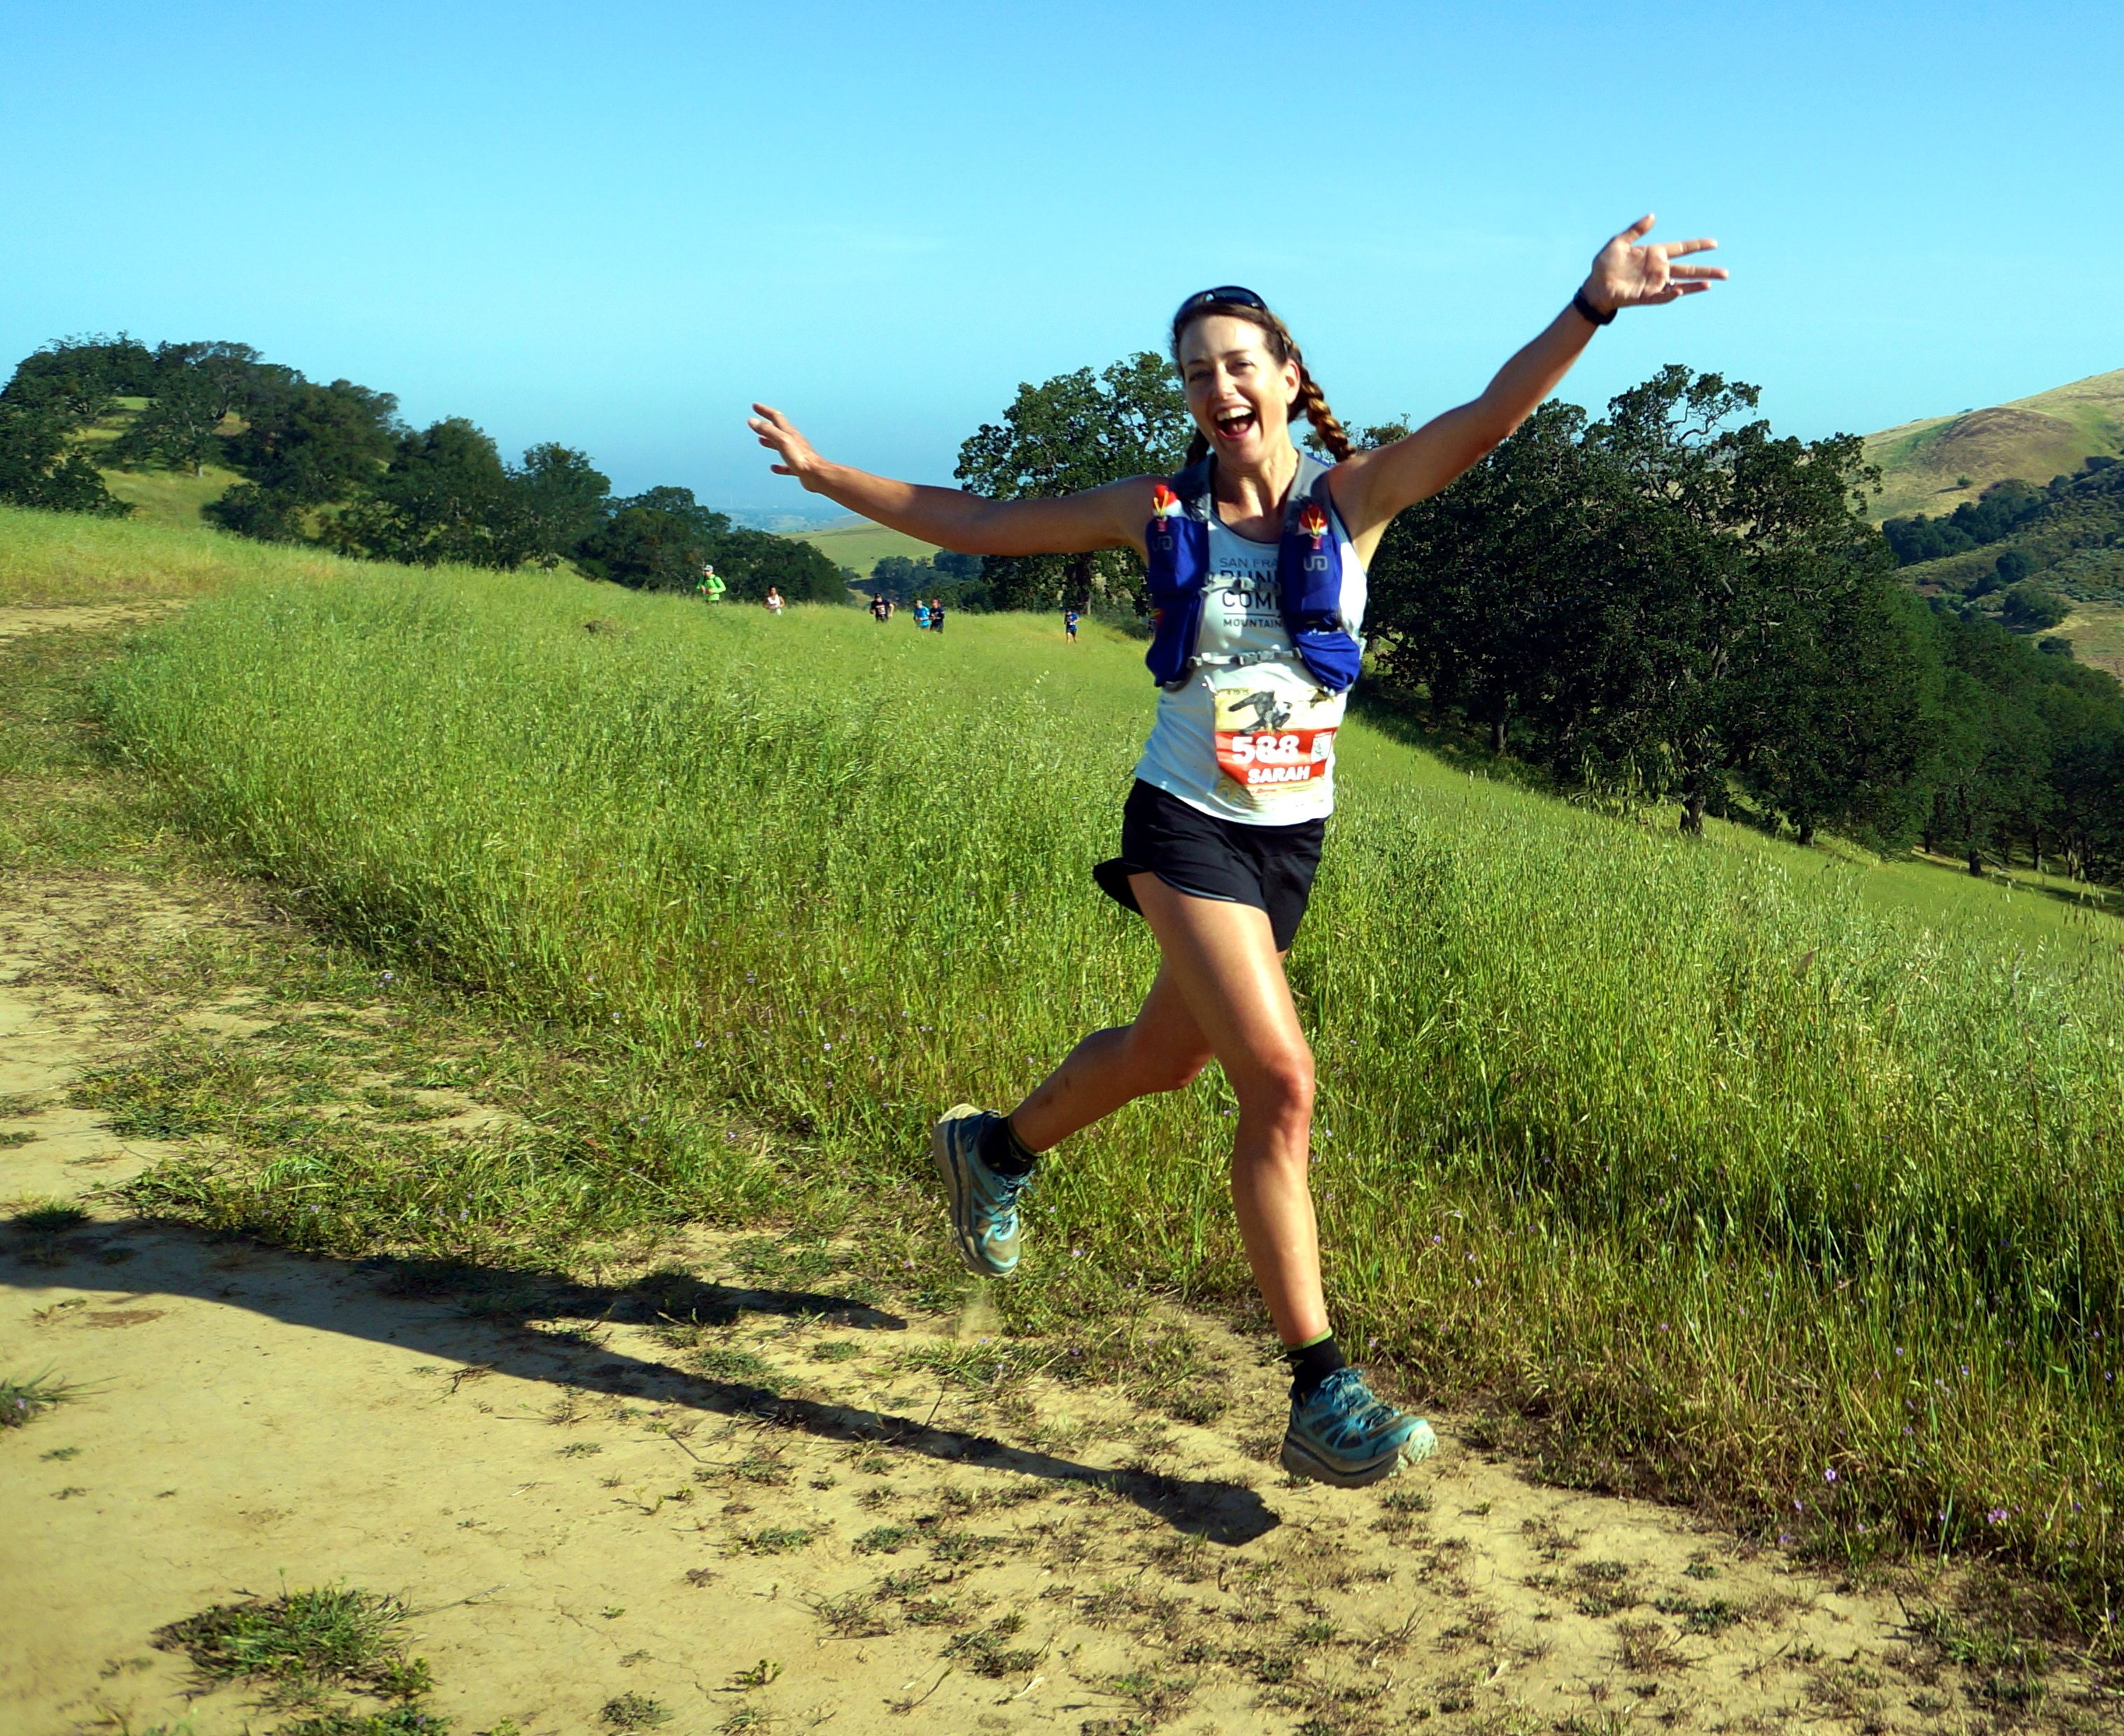 As you can see, I was in a good mood while racing the Diablo Trail Challenge half marathon. Photo by my buddy Nate Dunn, who was so nice to be out there.